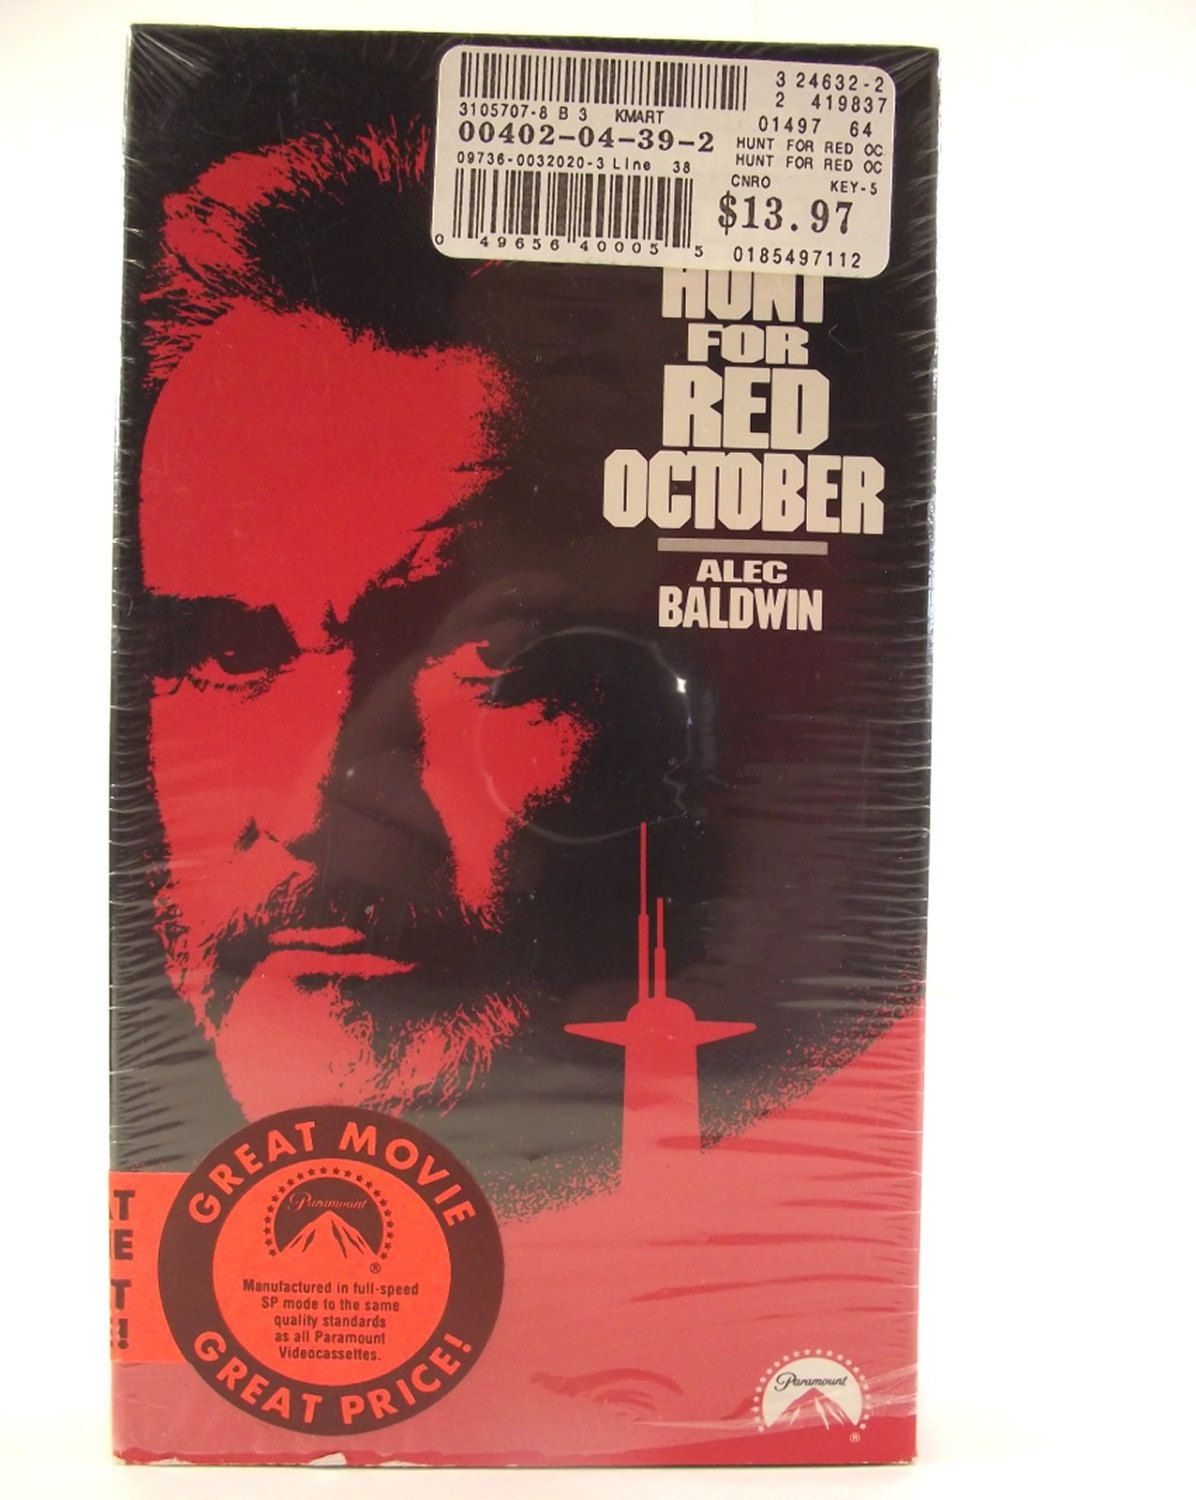 The Hunt for Red October VHS 1990 Sean Connery Alec Baldwin Scott Glenn NTSC Video PG Movie Film Cold War Action Adventure Thriller #35E by AdriennesAtticStore on Etsy